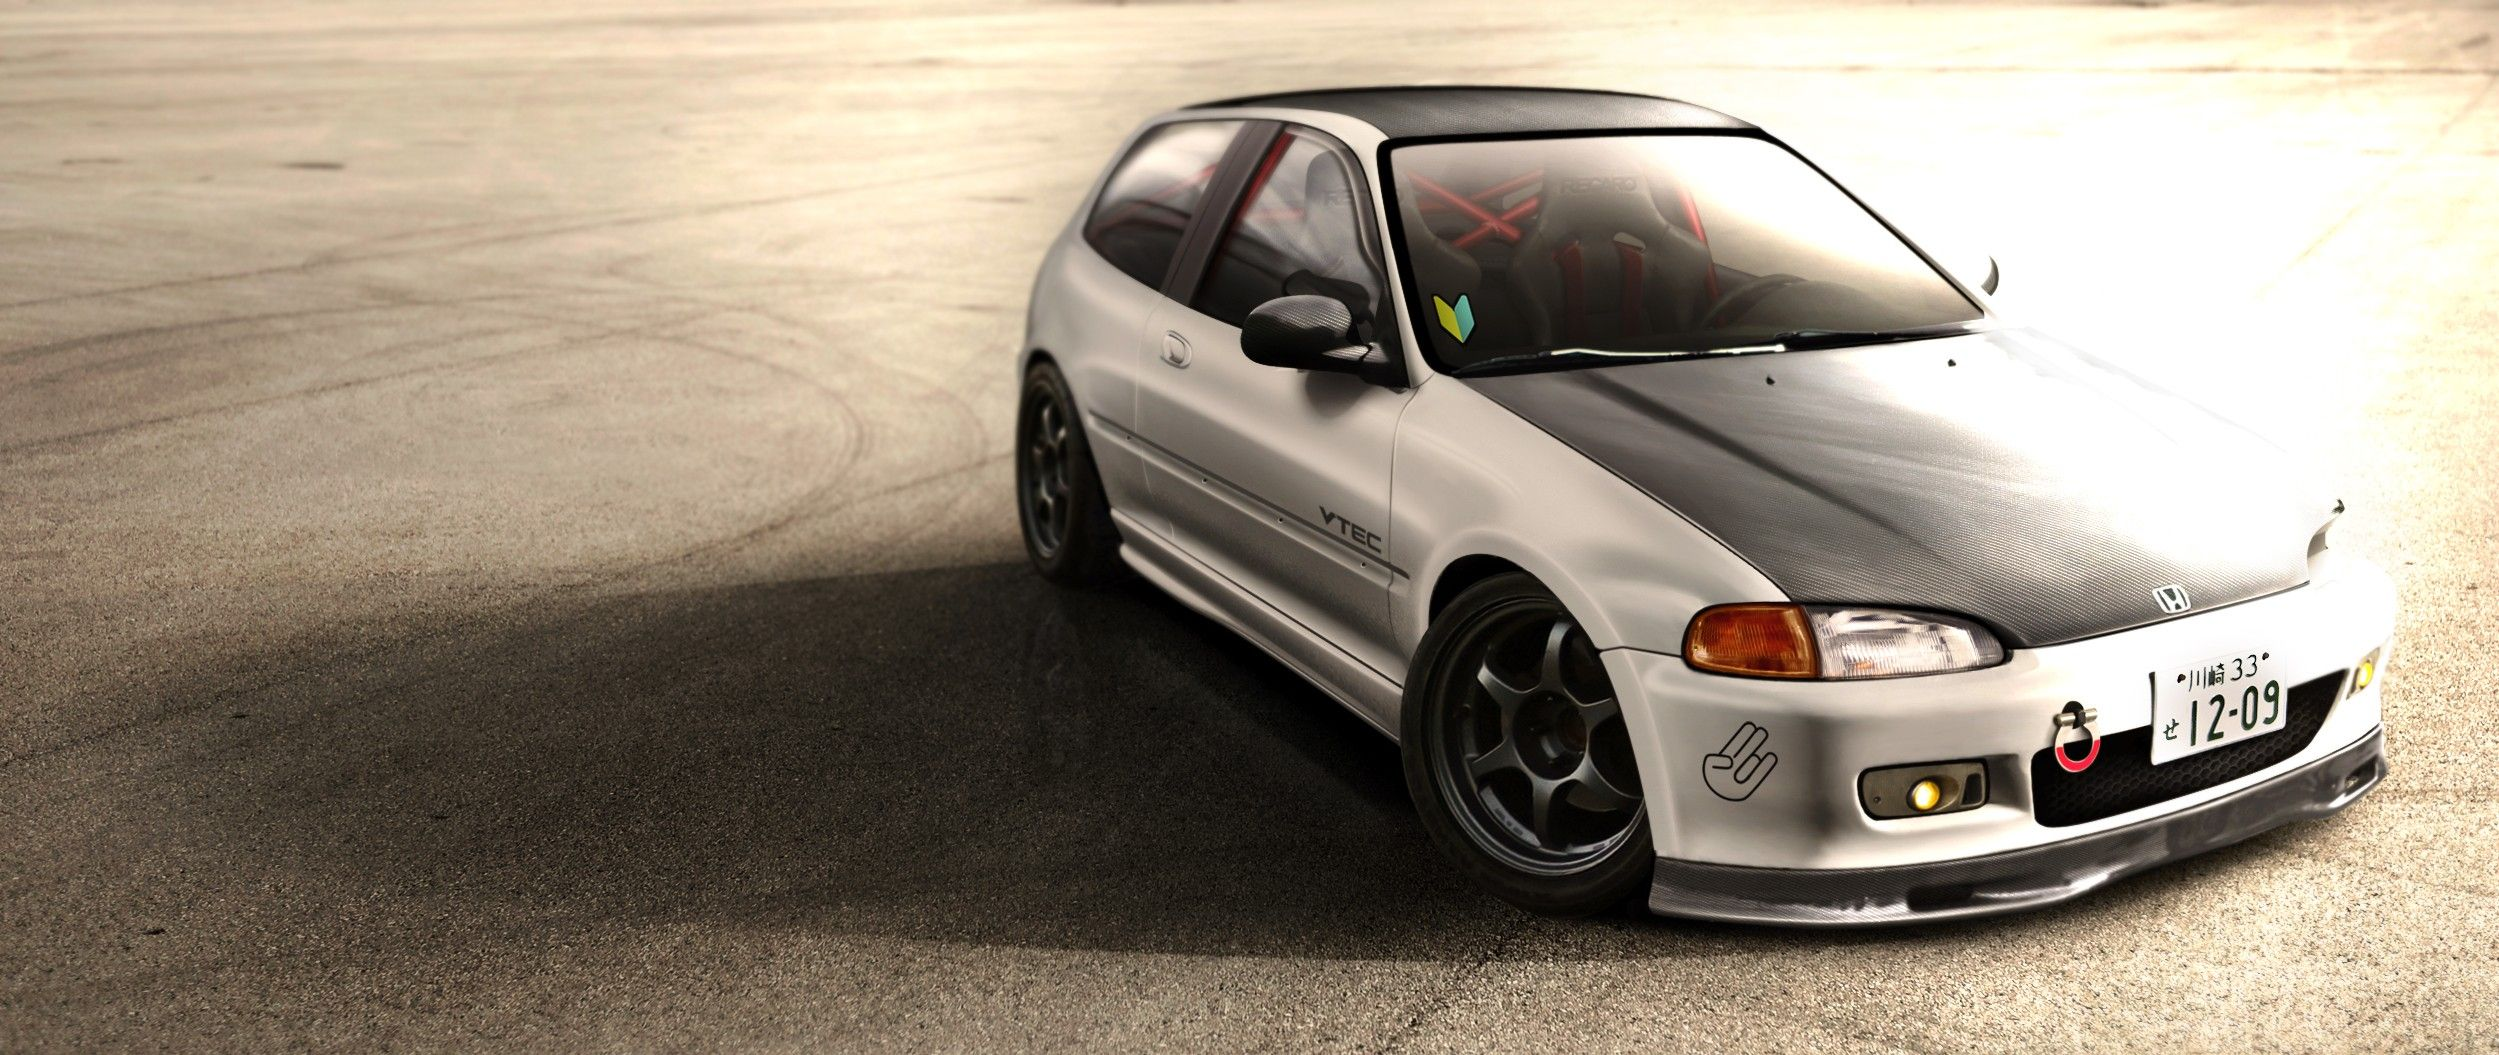 Image For Honda Civic JDM Wallpaper Images